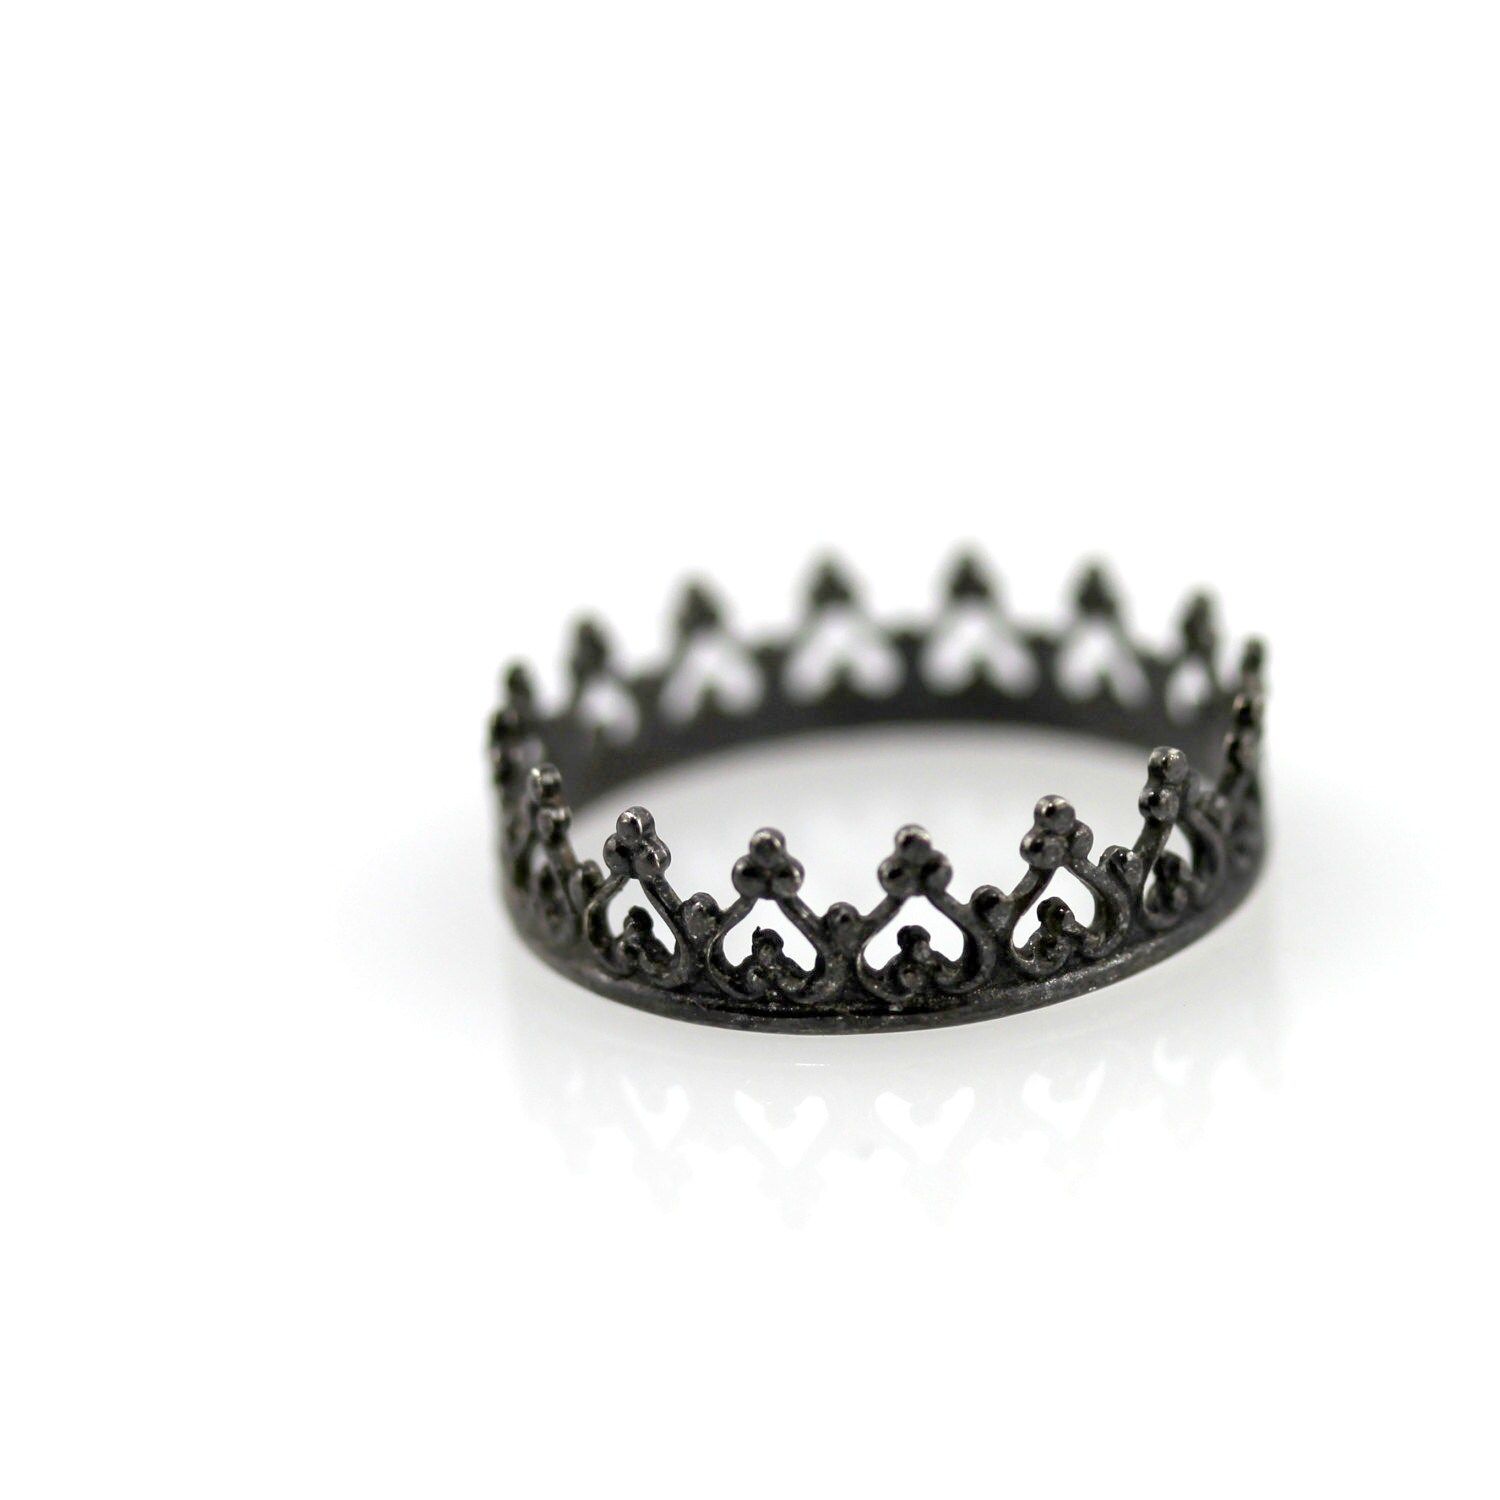 Black crown ring oxidized sterling silver ring